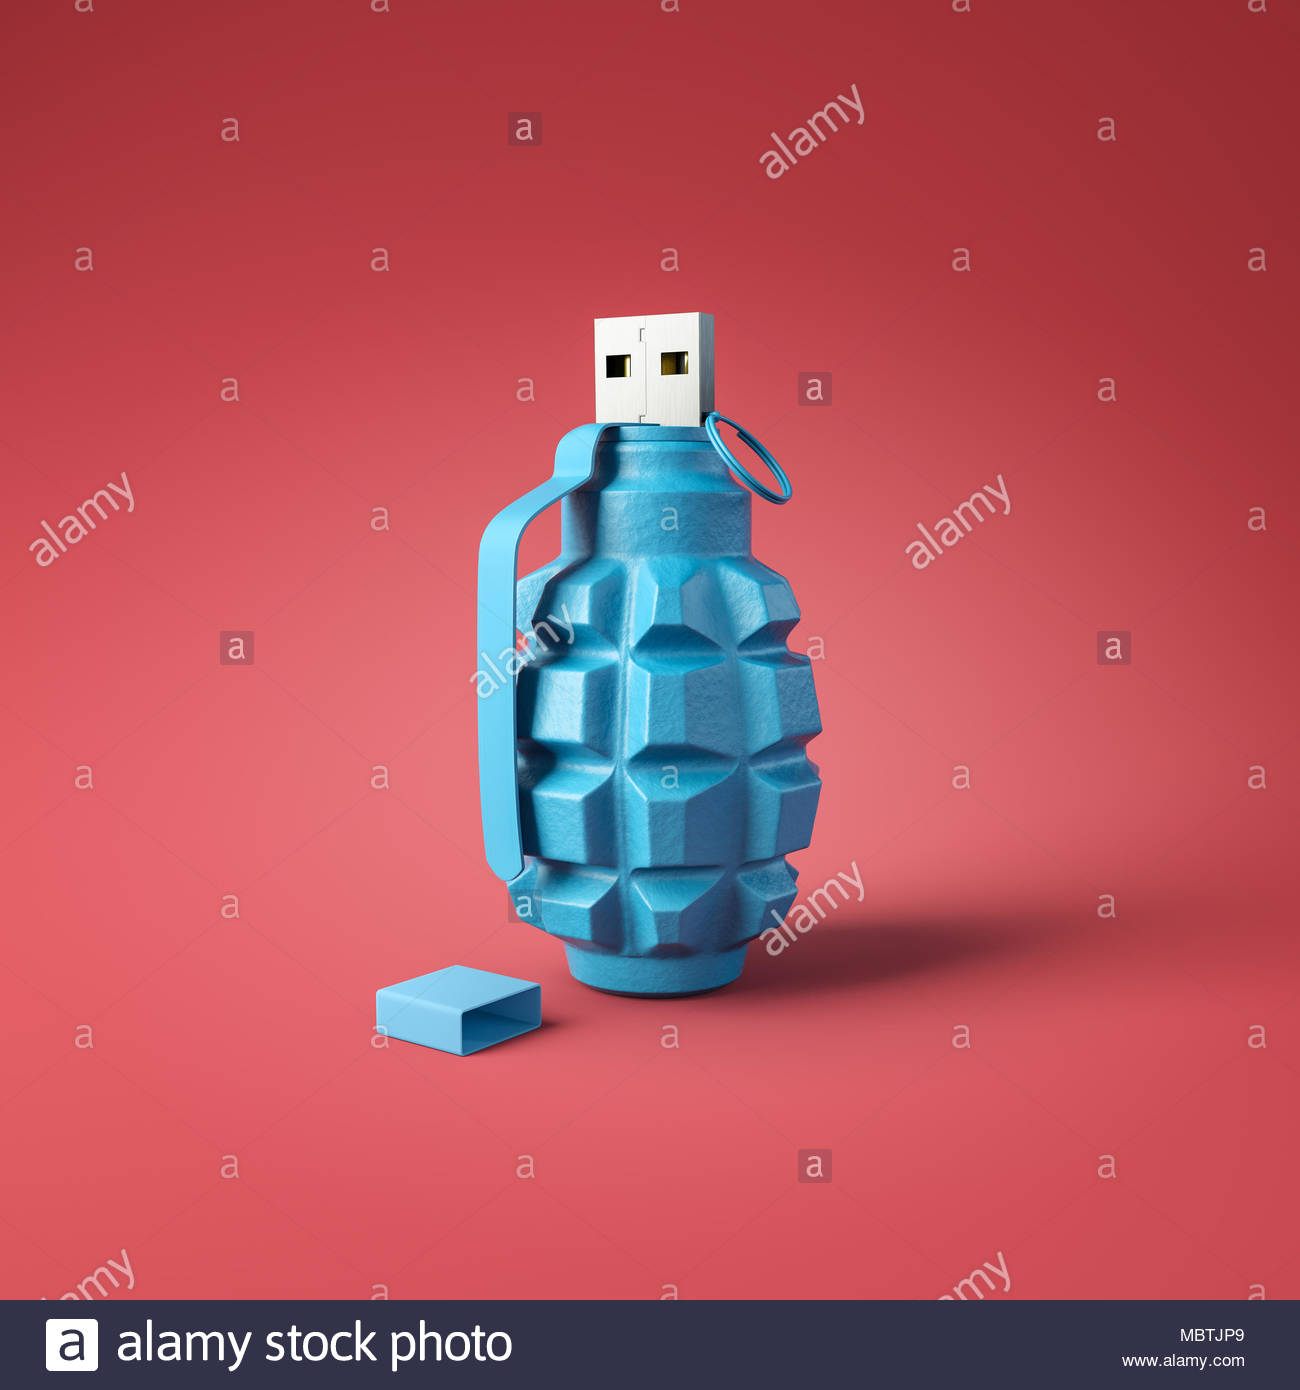 Flash drive usb pen safe data design on red square background. Data protection minimal concept - Stock Image